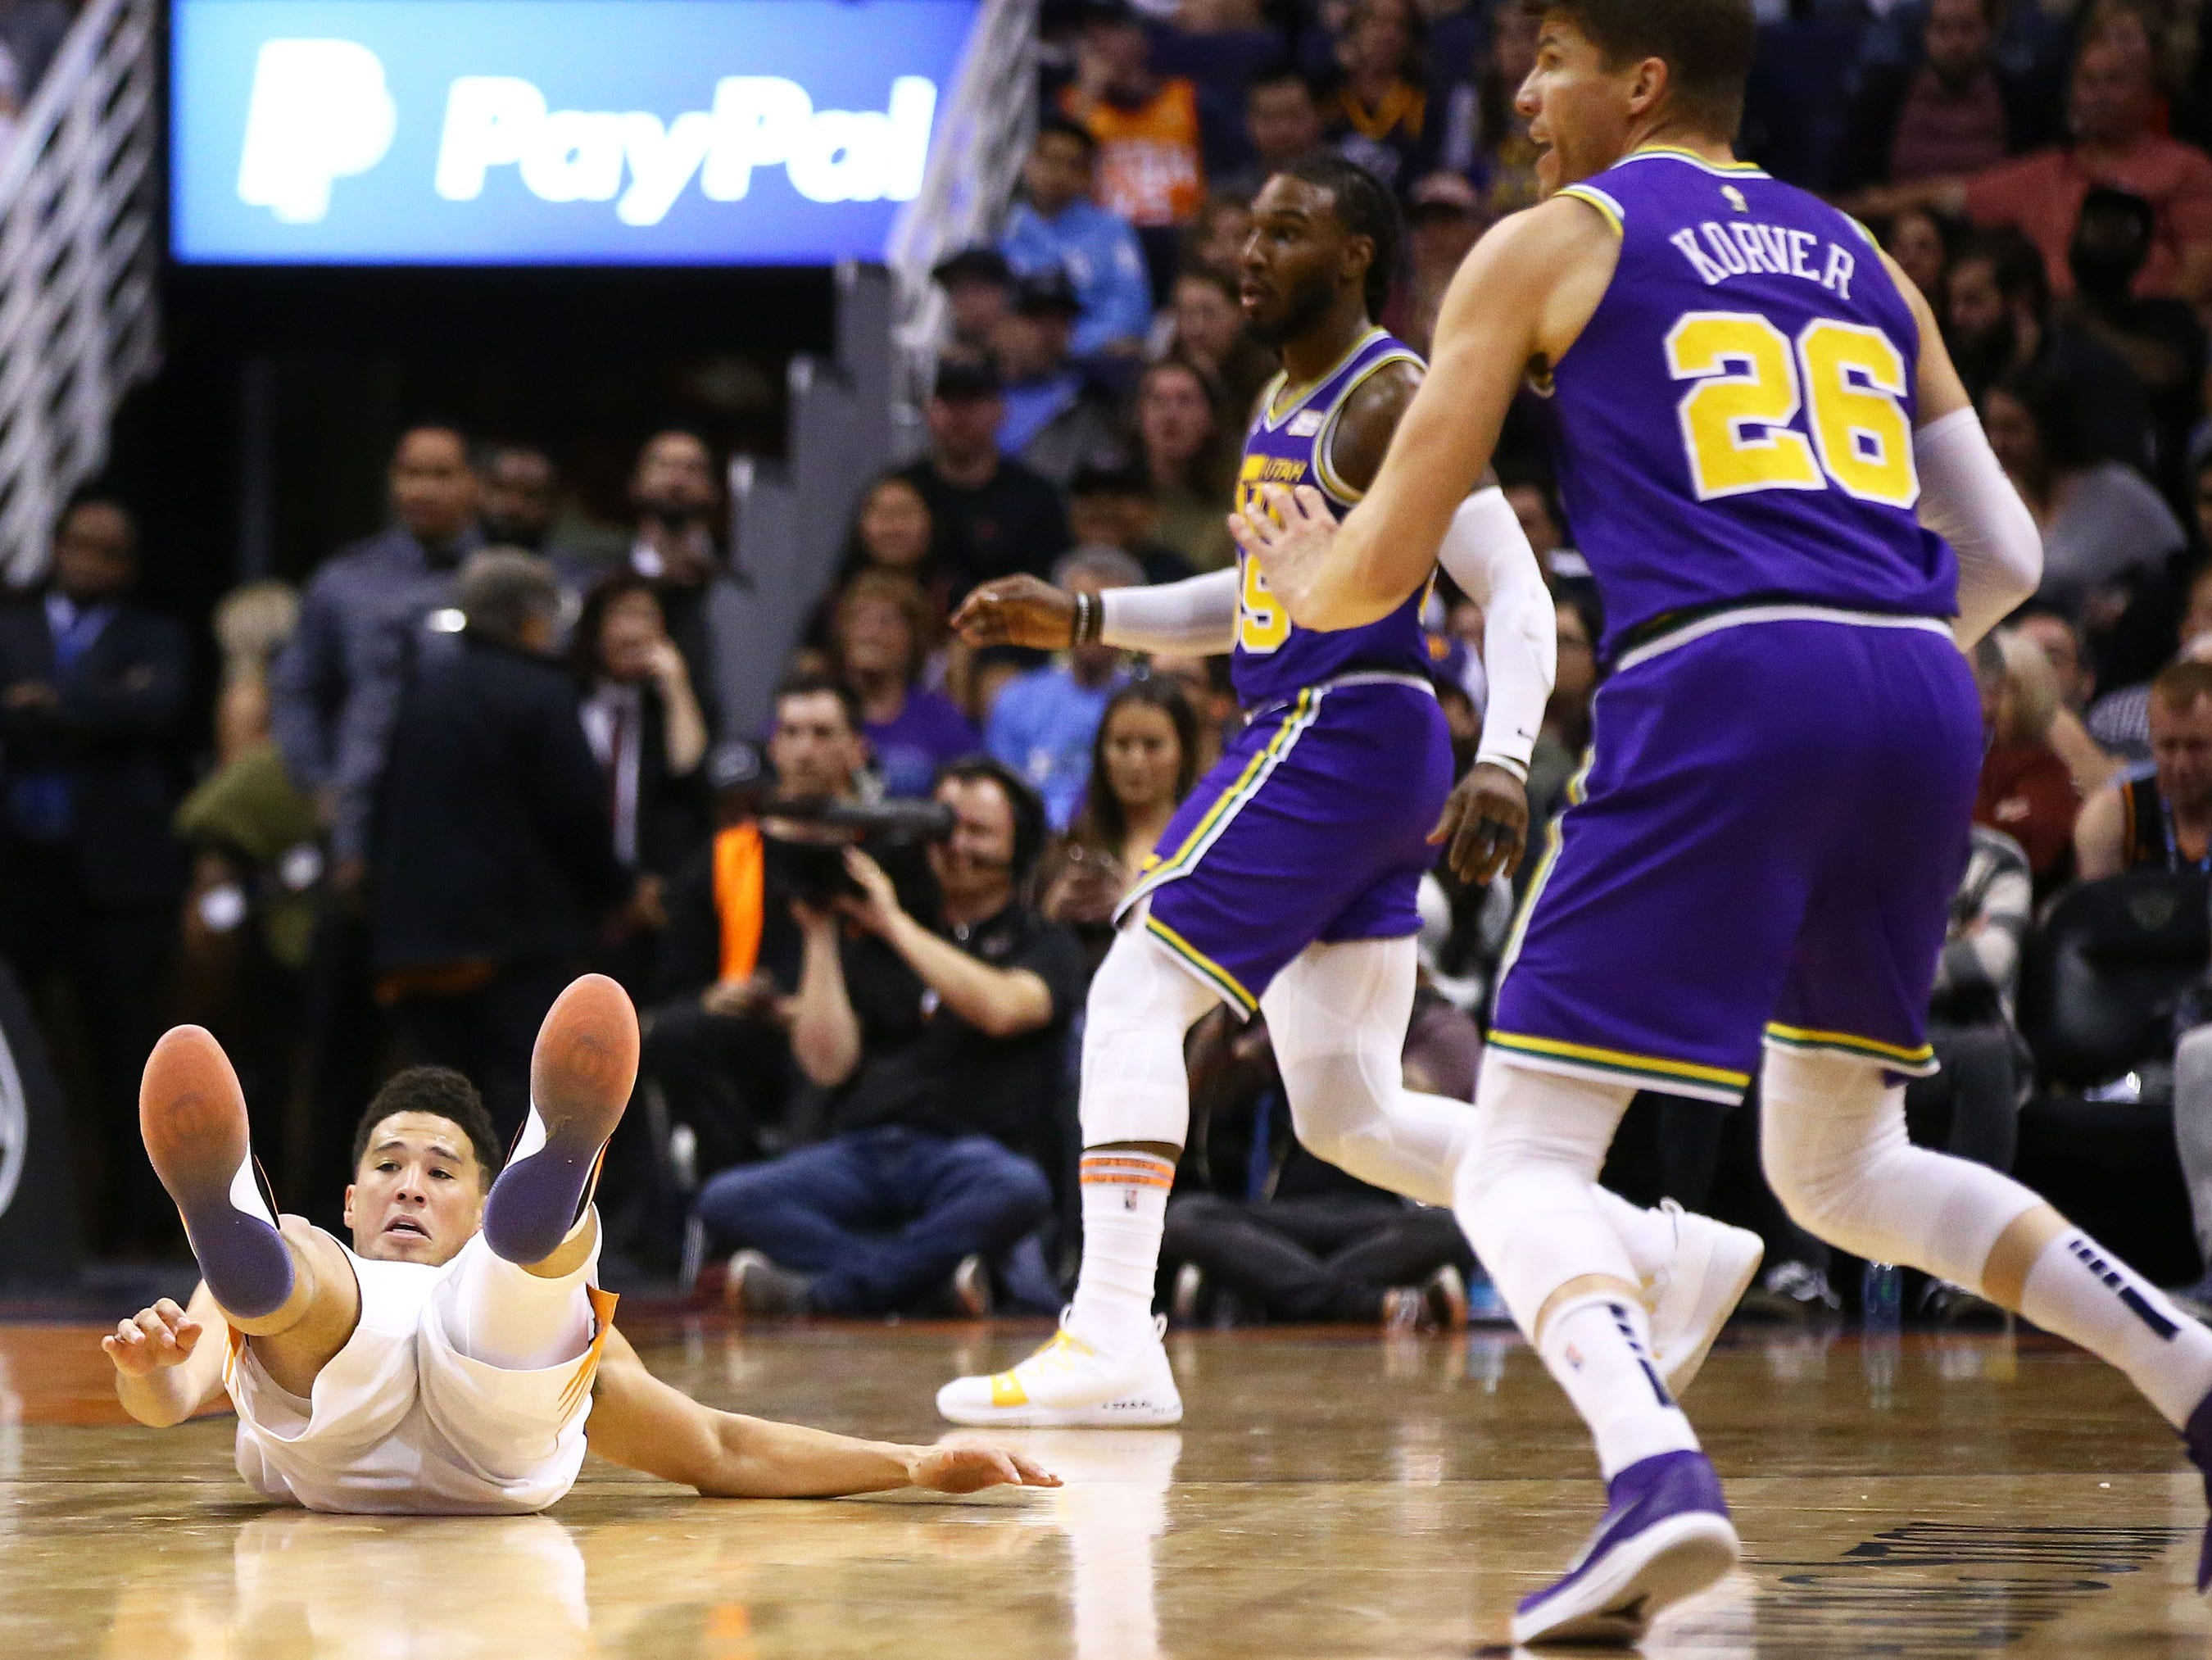 Phoenix Suns guard Devin Booker (1) falls to the court against the Utah Jazz in the second half on Mar. 13, 2019 at Talking Stick Resort Arena in Phoenix, Ariz.